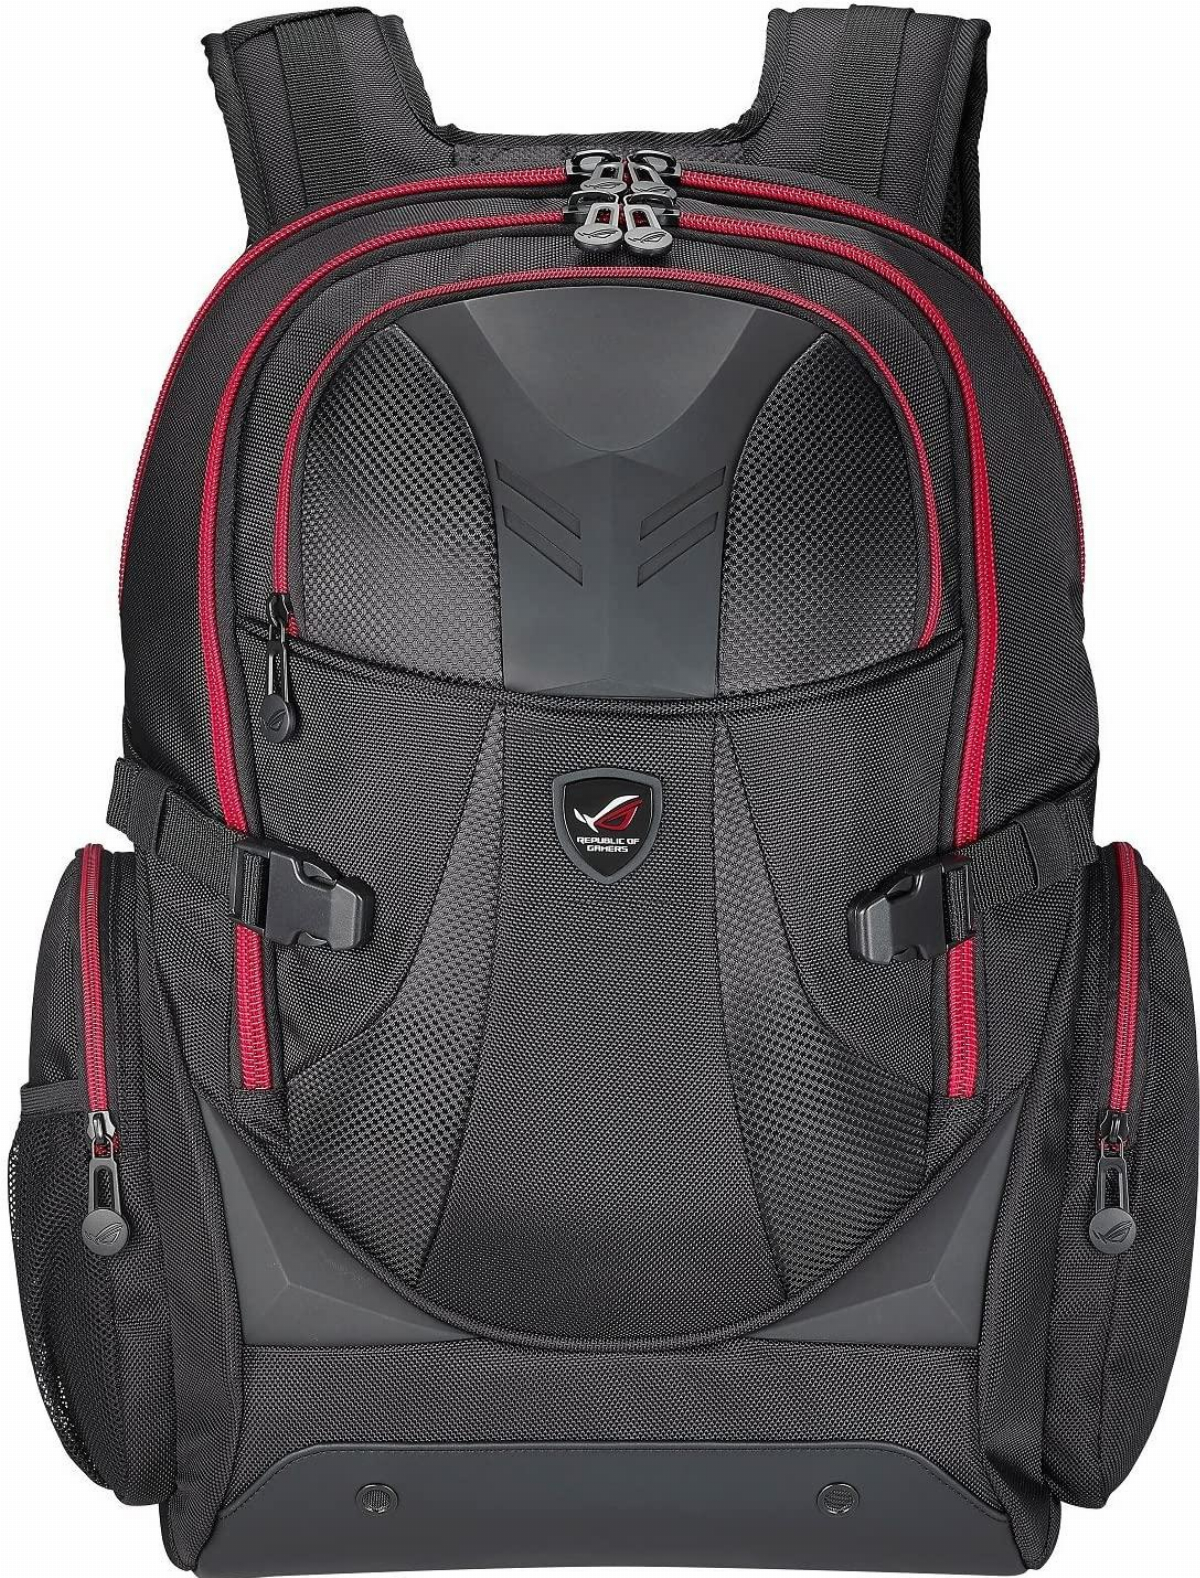 Раница за лаптоп ASUS ROG XRanger Gaming backpack